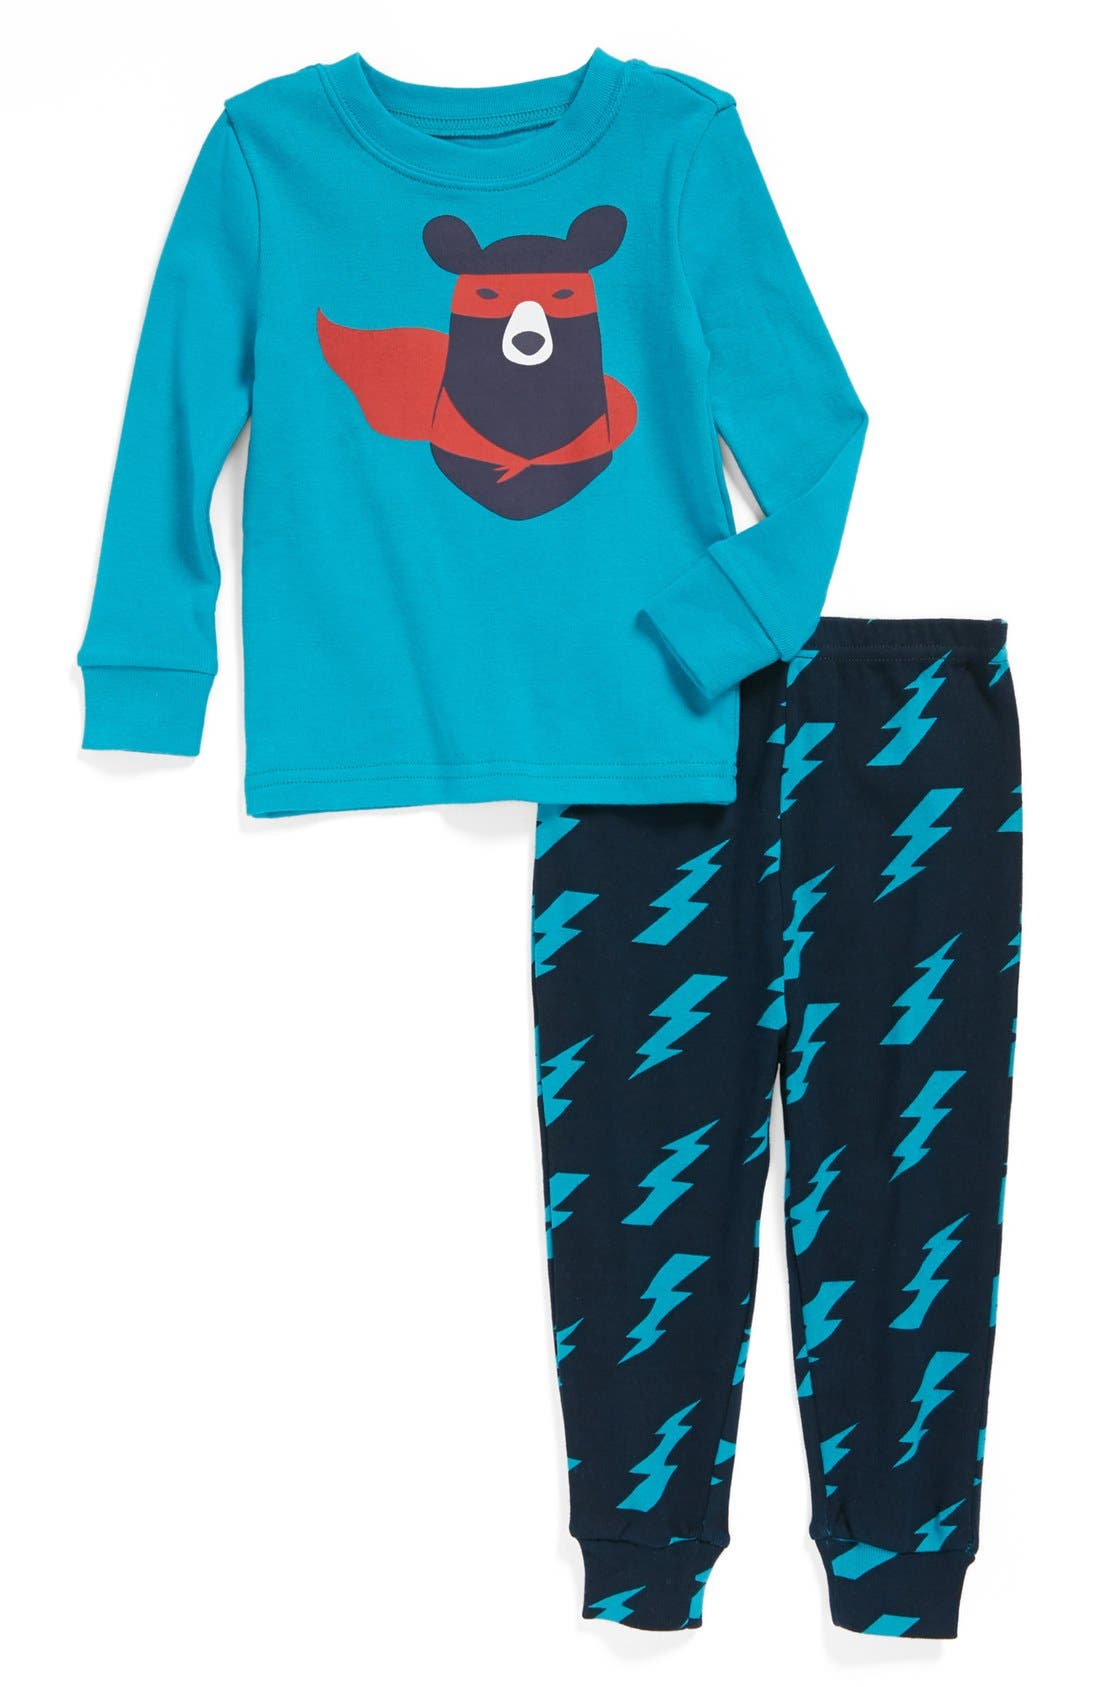 Alternate Image 1 Selected - Tucker + Tate Two-Piece Fitted Pajamas (Toddler Boys)